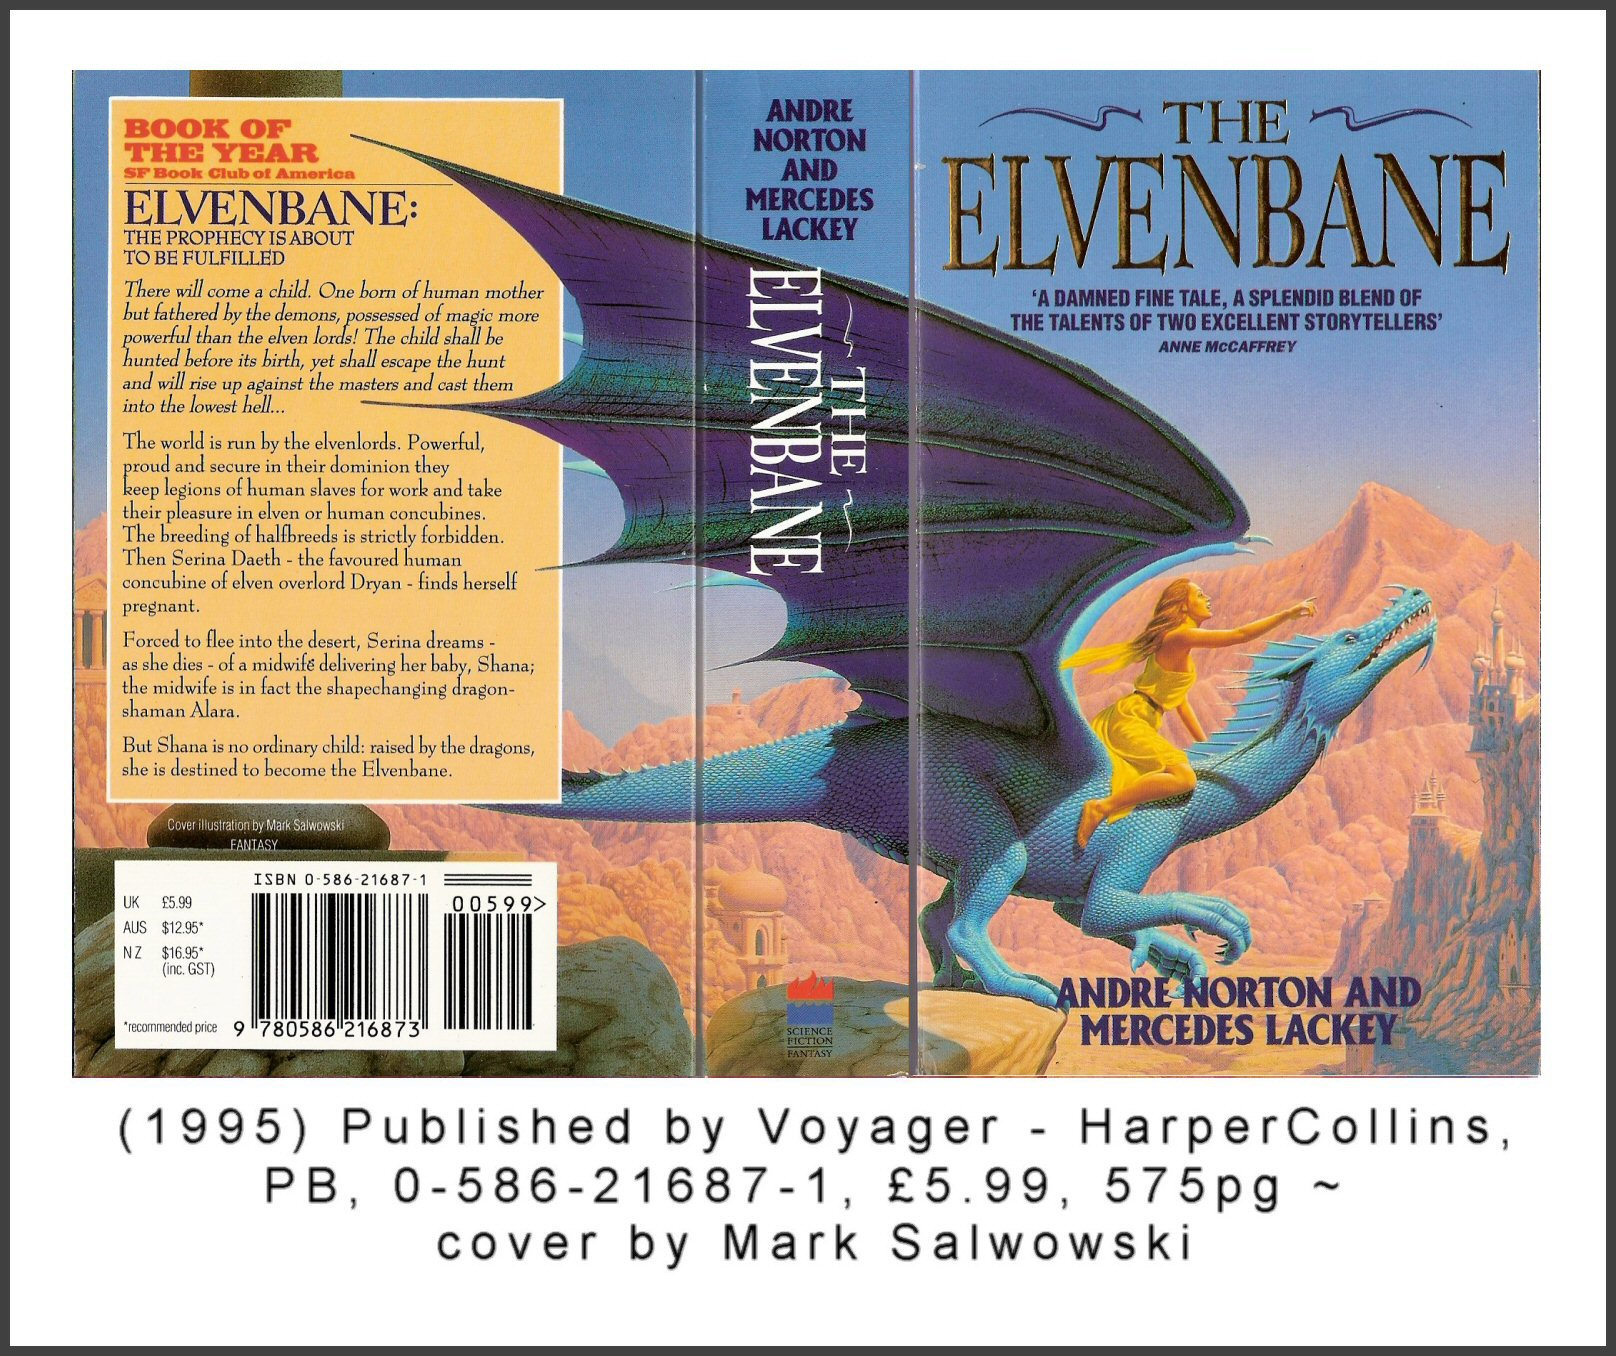 Another Elvenbane cover